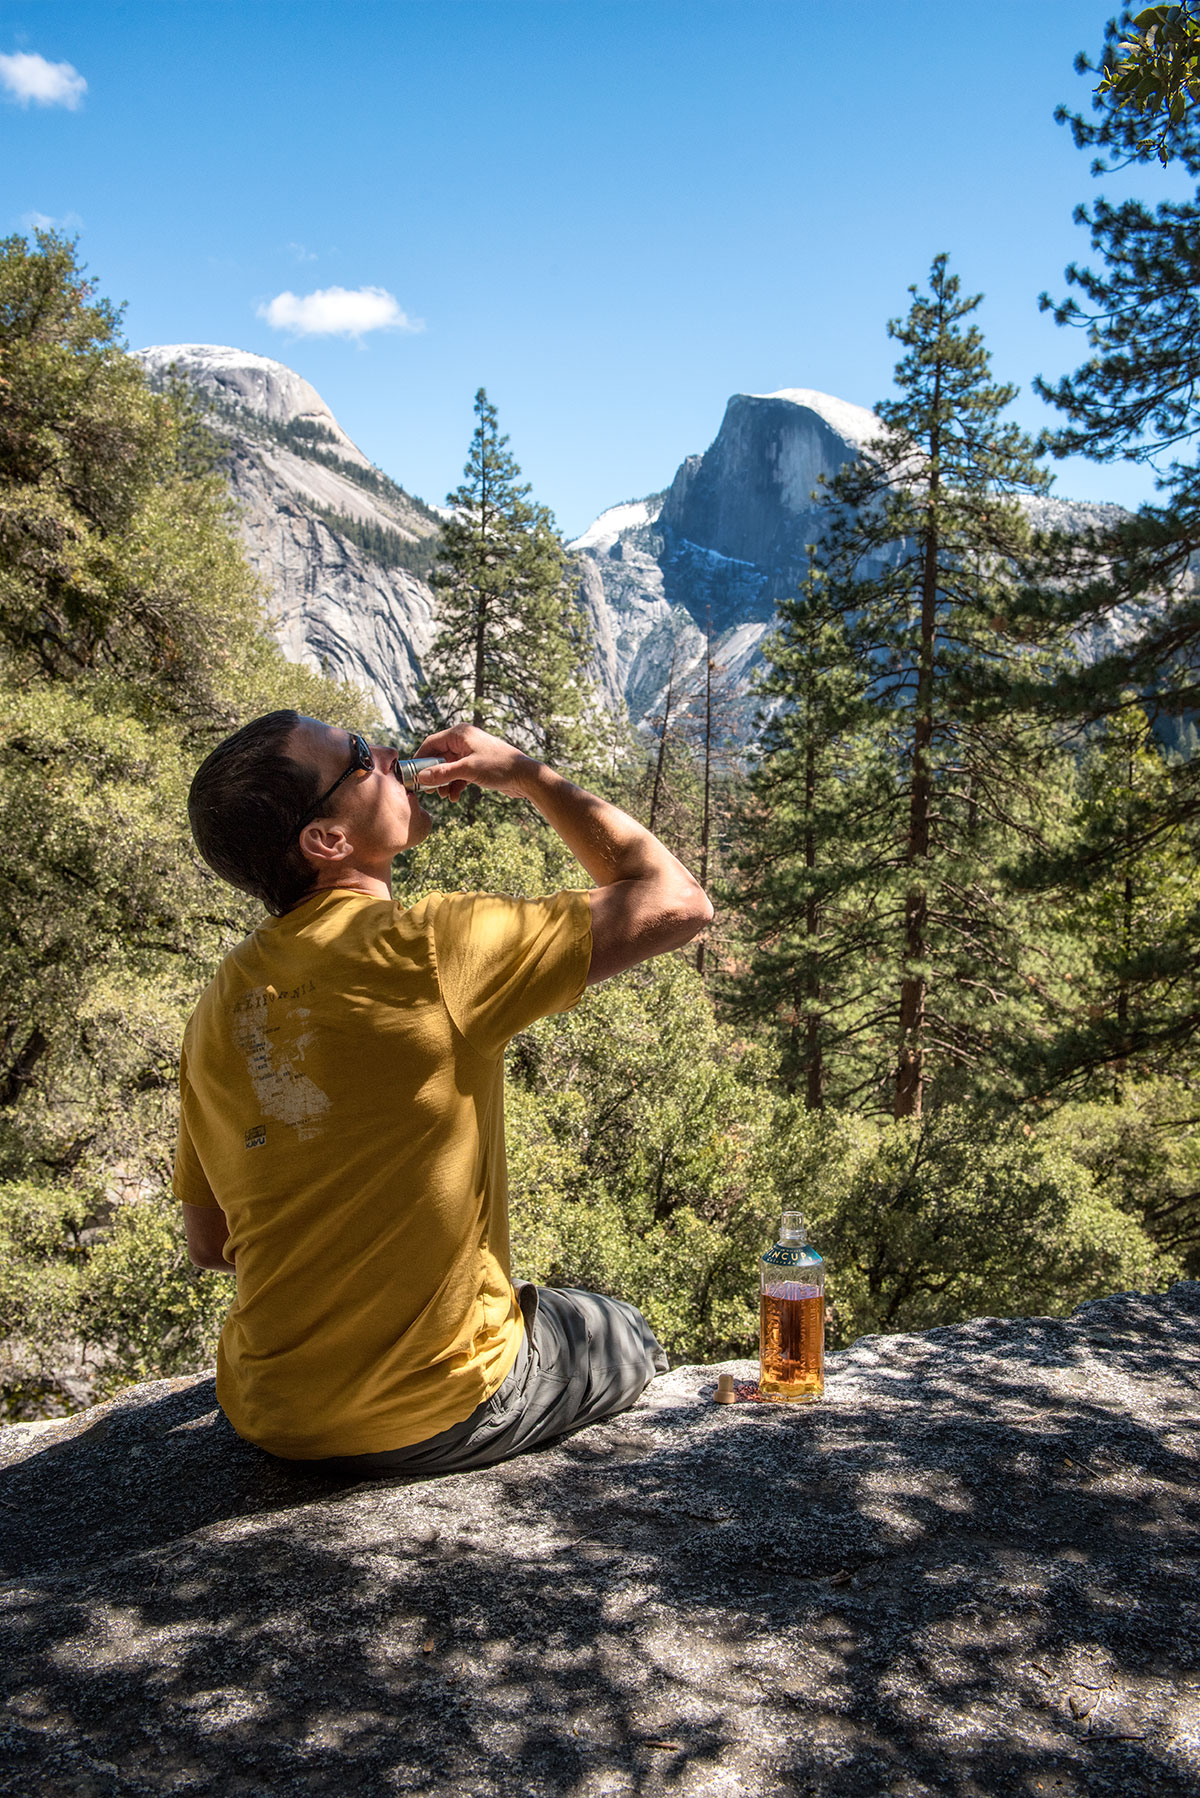 austin-trigg-whiskey-yosemite-product-TINCUP-The-Couch-shot-half-dome-valley.jpg